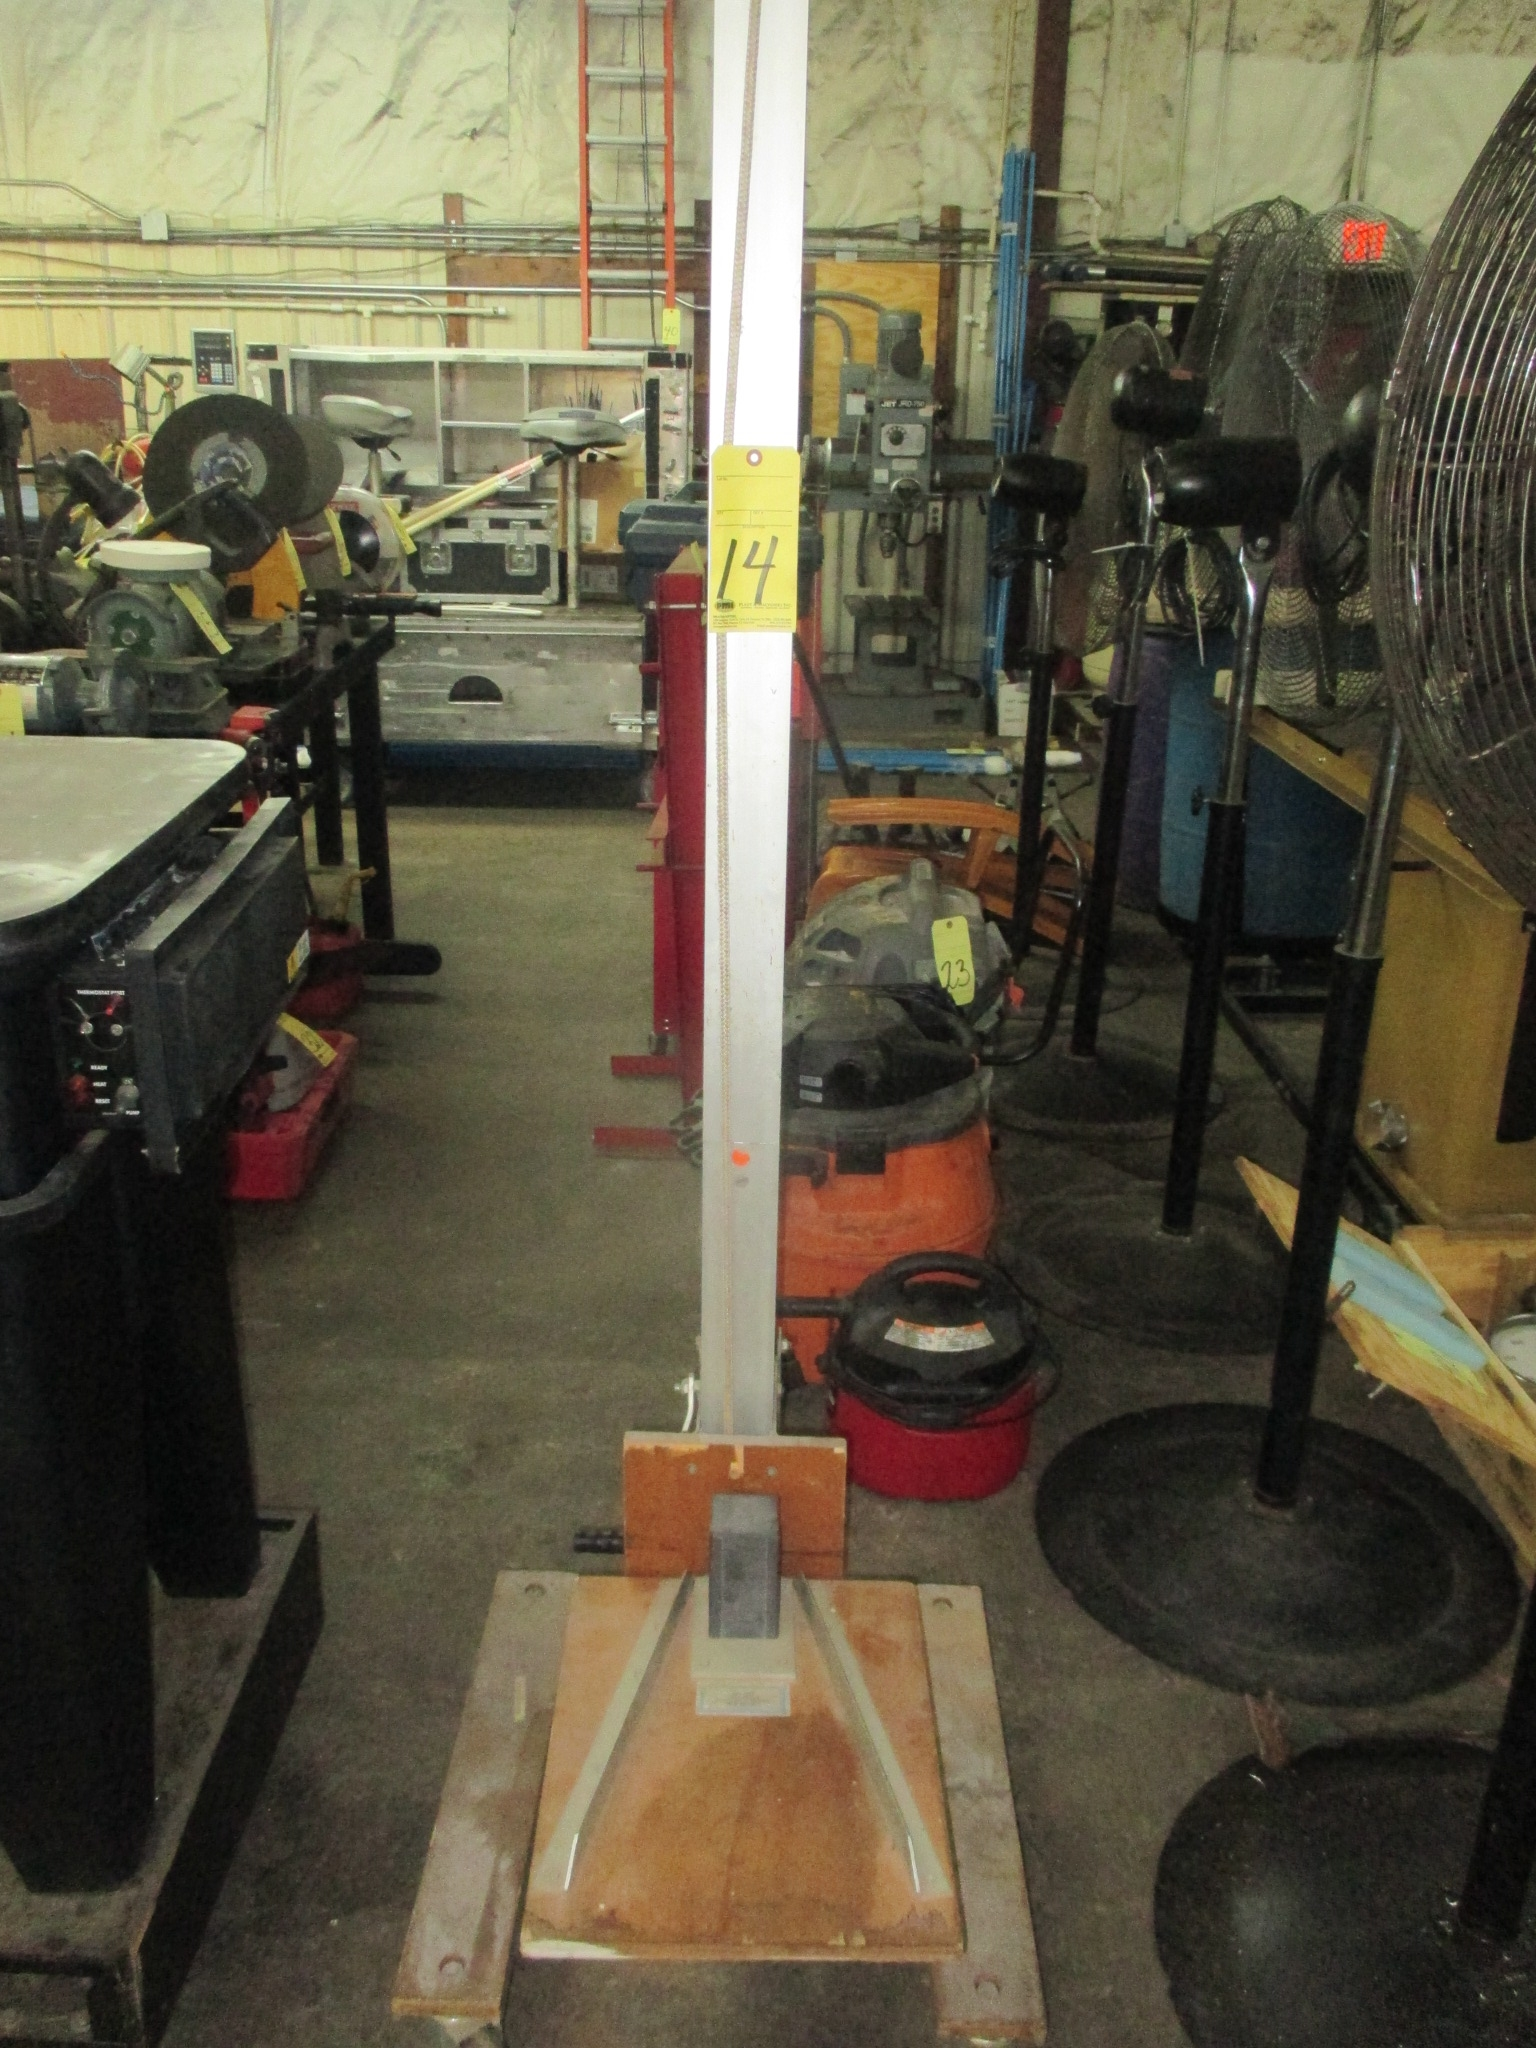 Lot 14 - LIFTING APPARATUS, GIL-LIFT